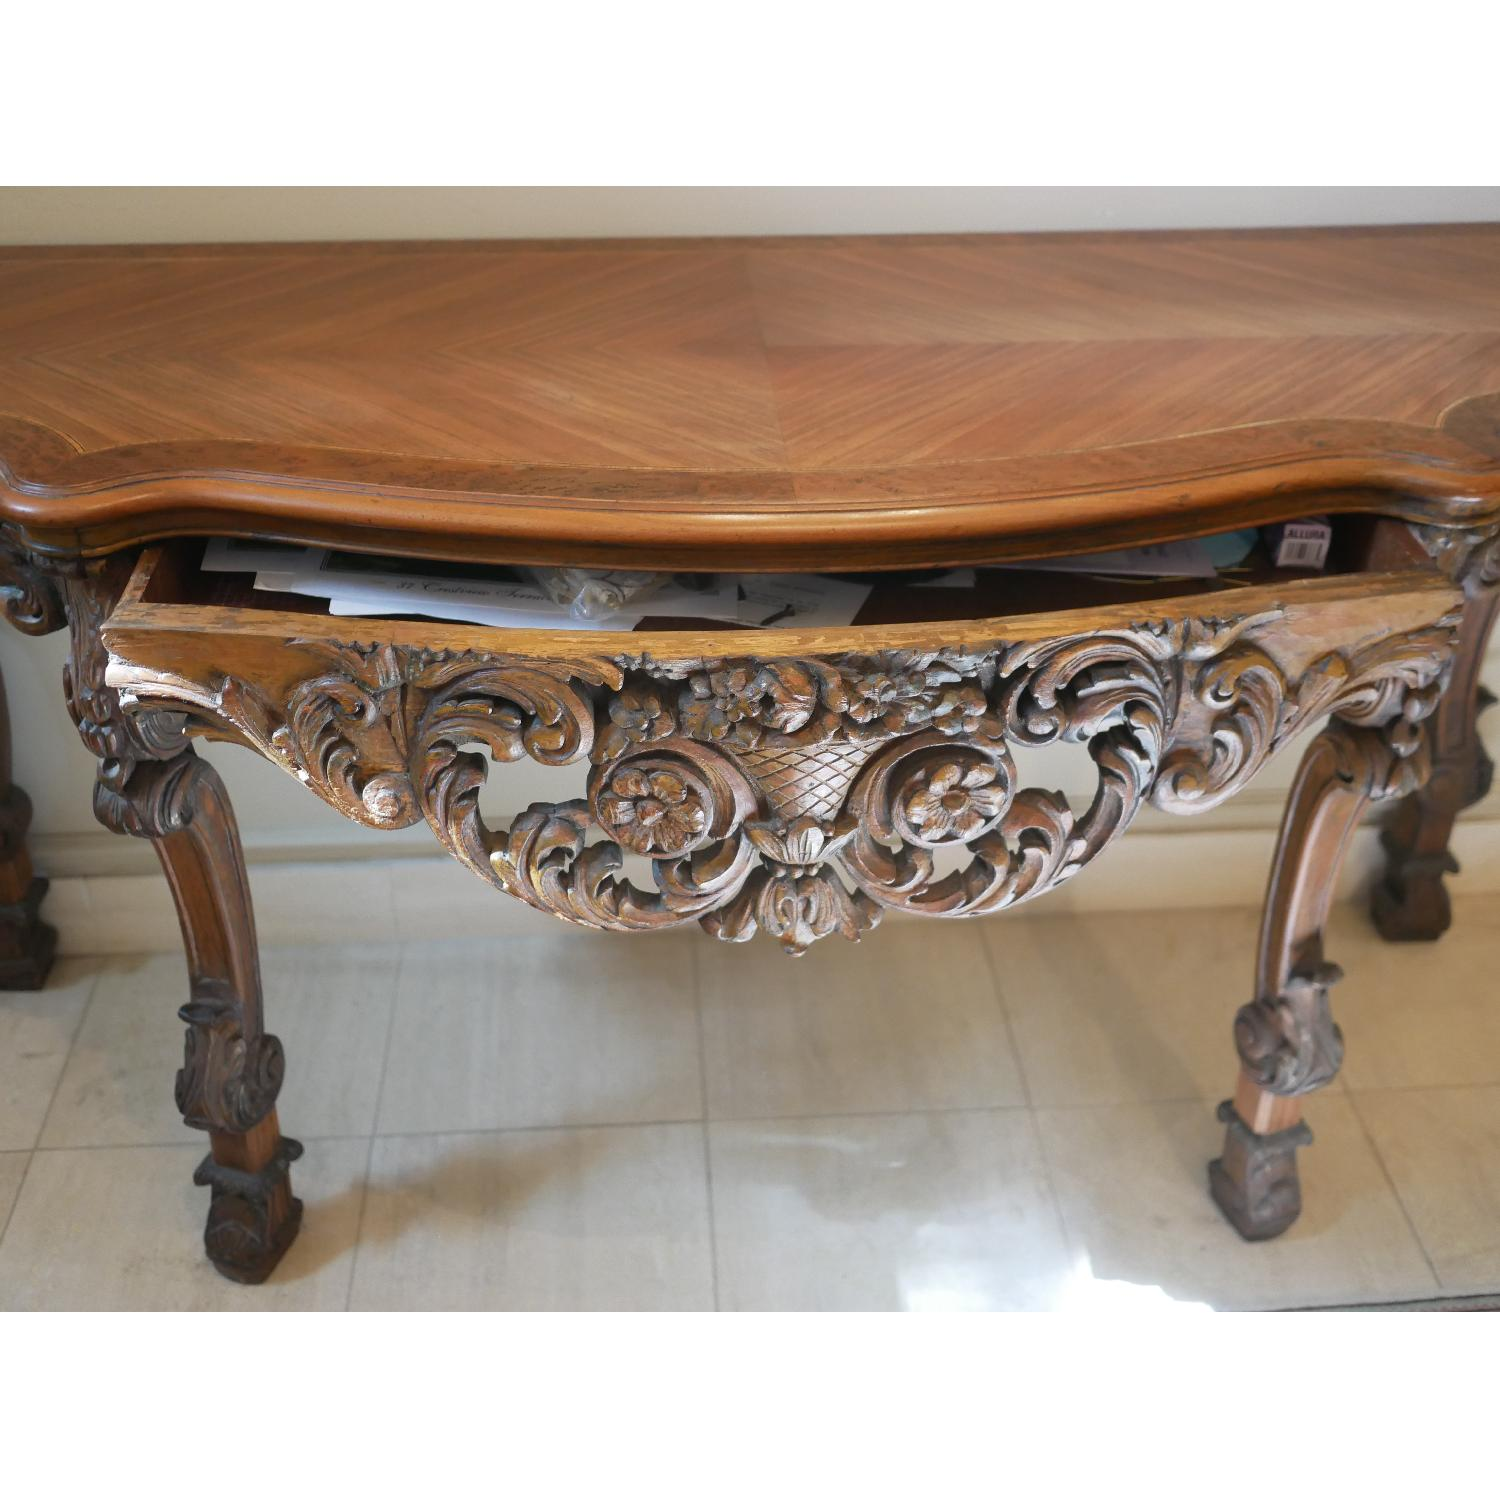 Antique American Console Table - image-8